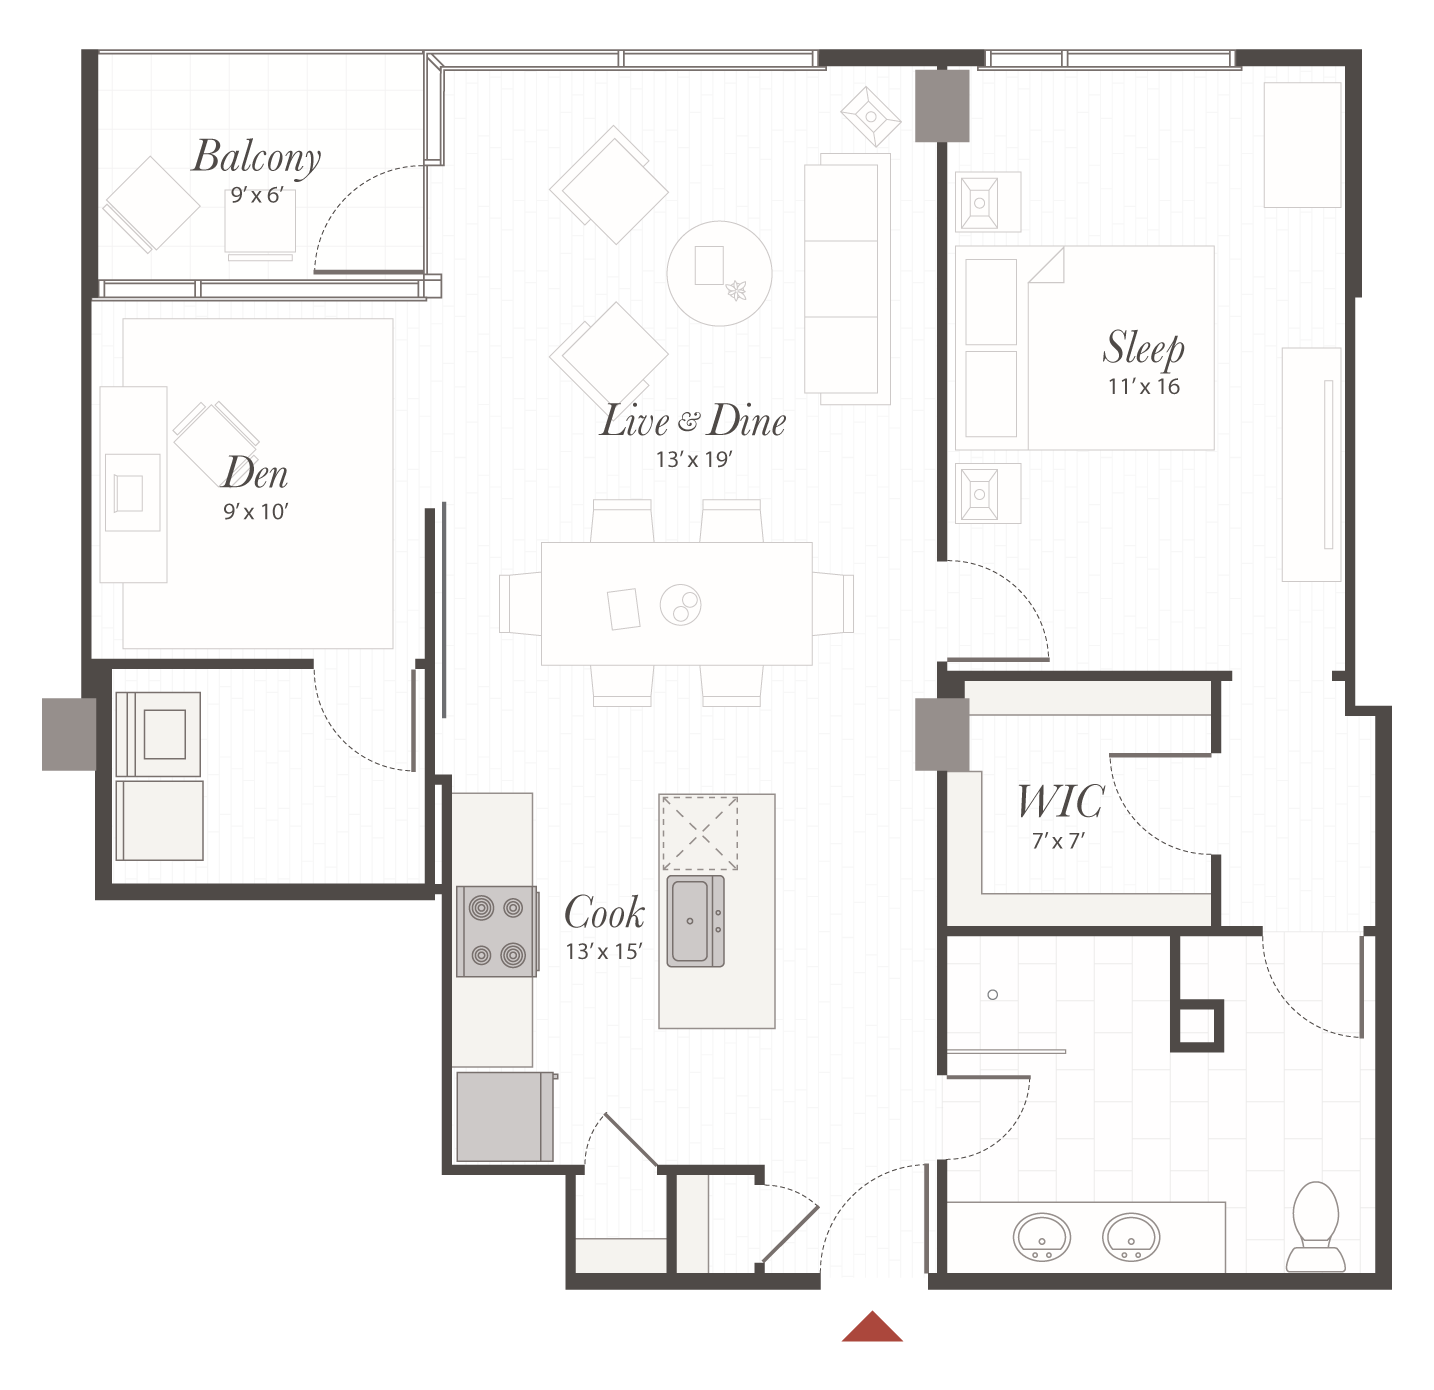 B3 floor plan 1 bedroom with den apartment cincinnati oh for Apartment floor plans 1 bedroom with den